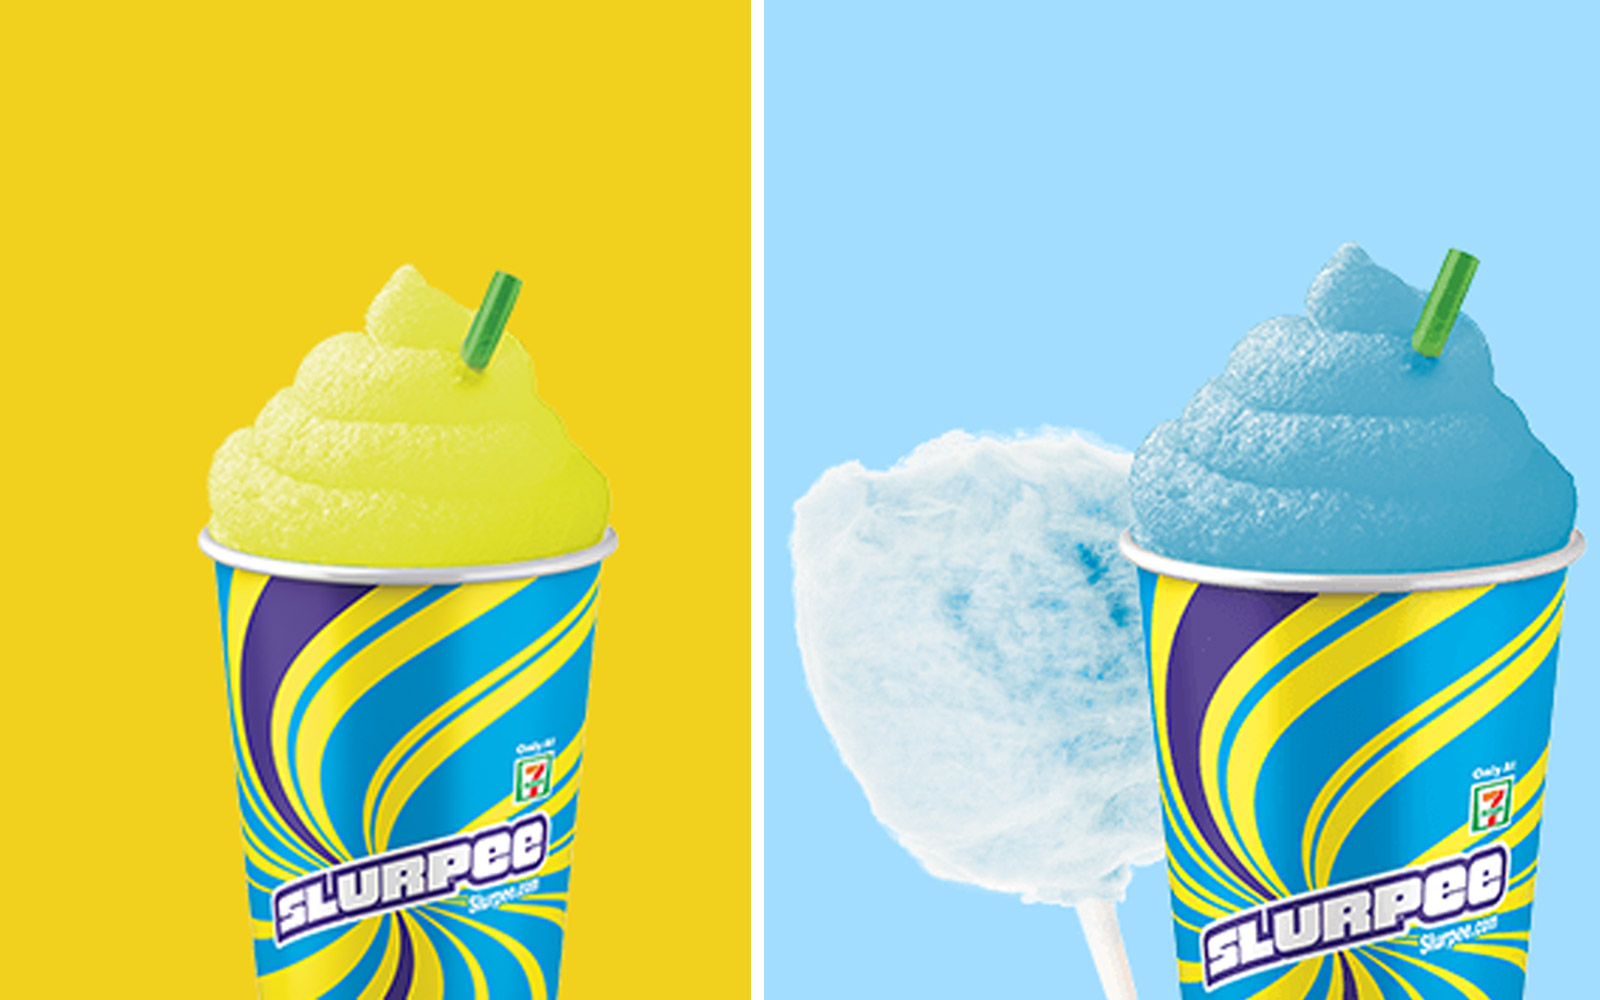 7-Eleven Bring Your Own Cup Day: Fill Any Cup With Slurpee